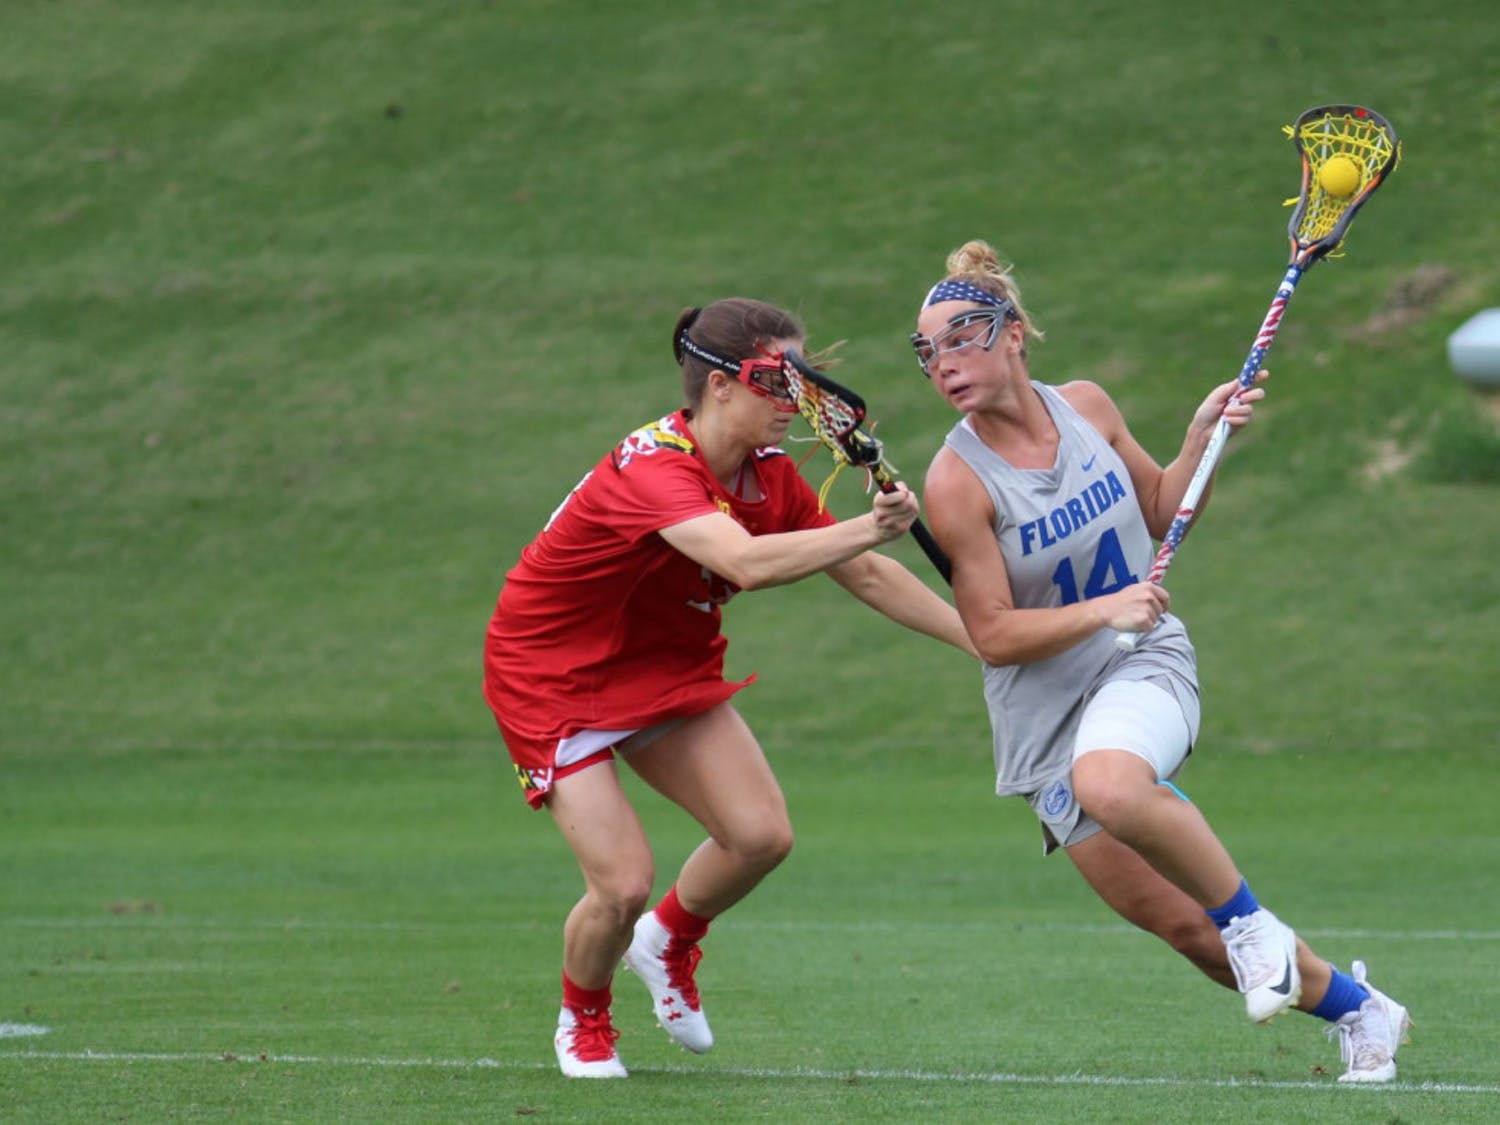 Senior attacker Lindsey Ronbeck scored two goals and had two assists in the Gators' 11-9 loss to North Carolina on Saturday.